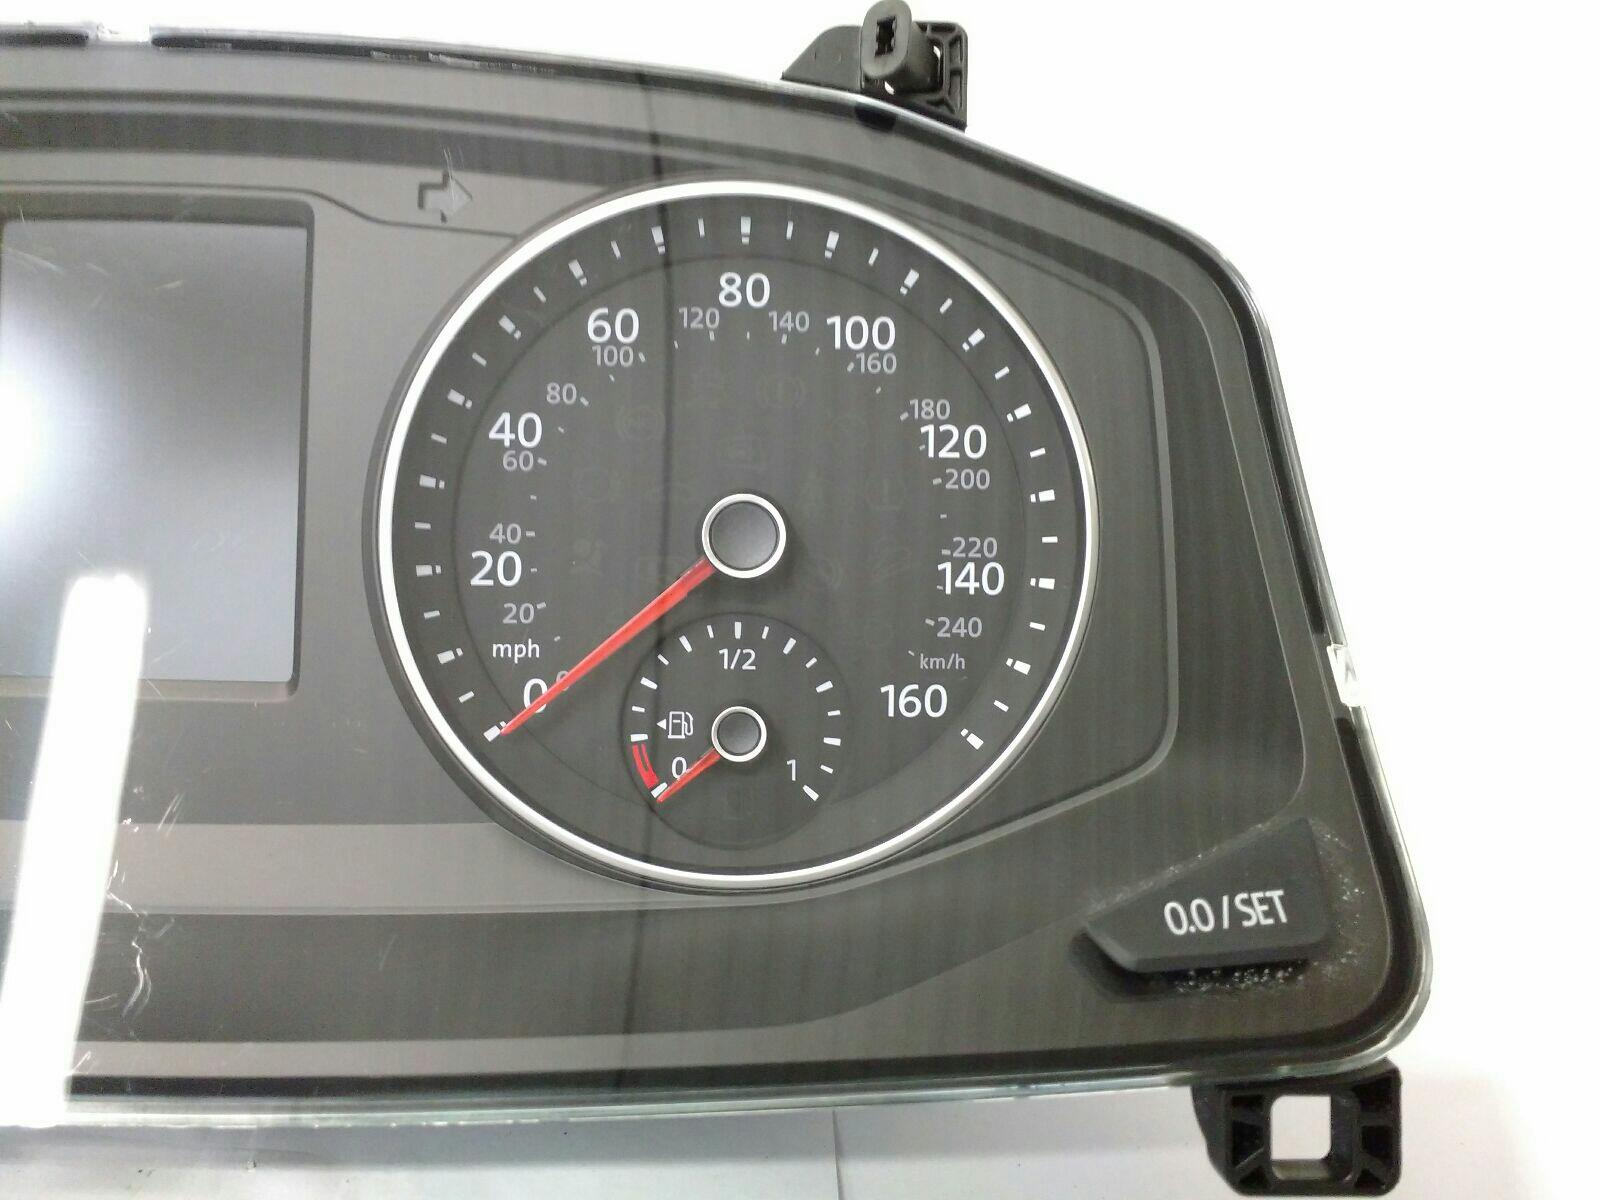 Volkswagen Transporter 2015 On Instrument Cluster (Diesel / Manual